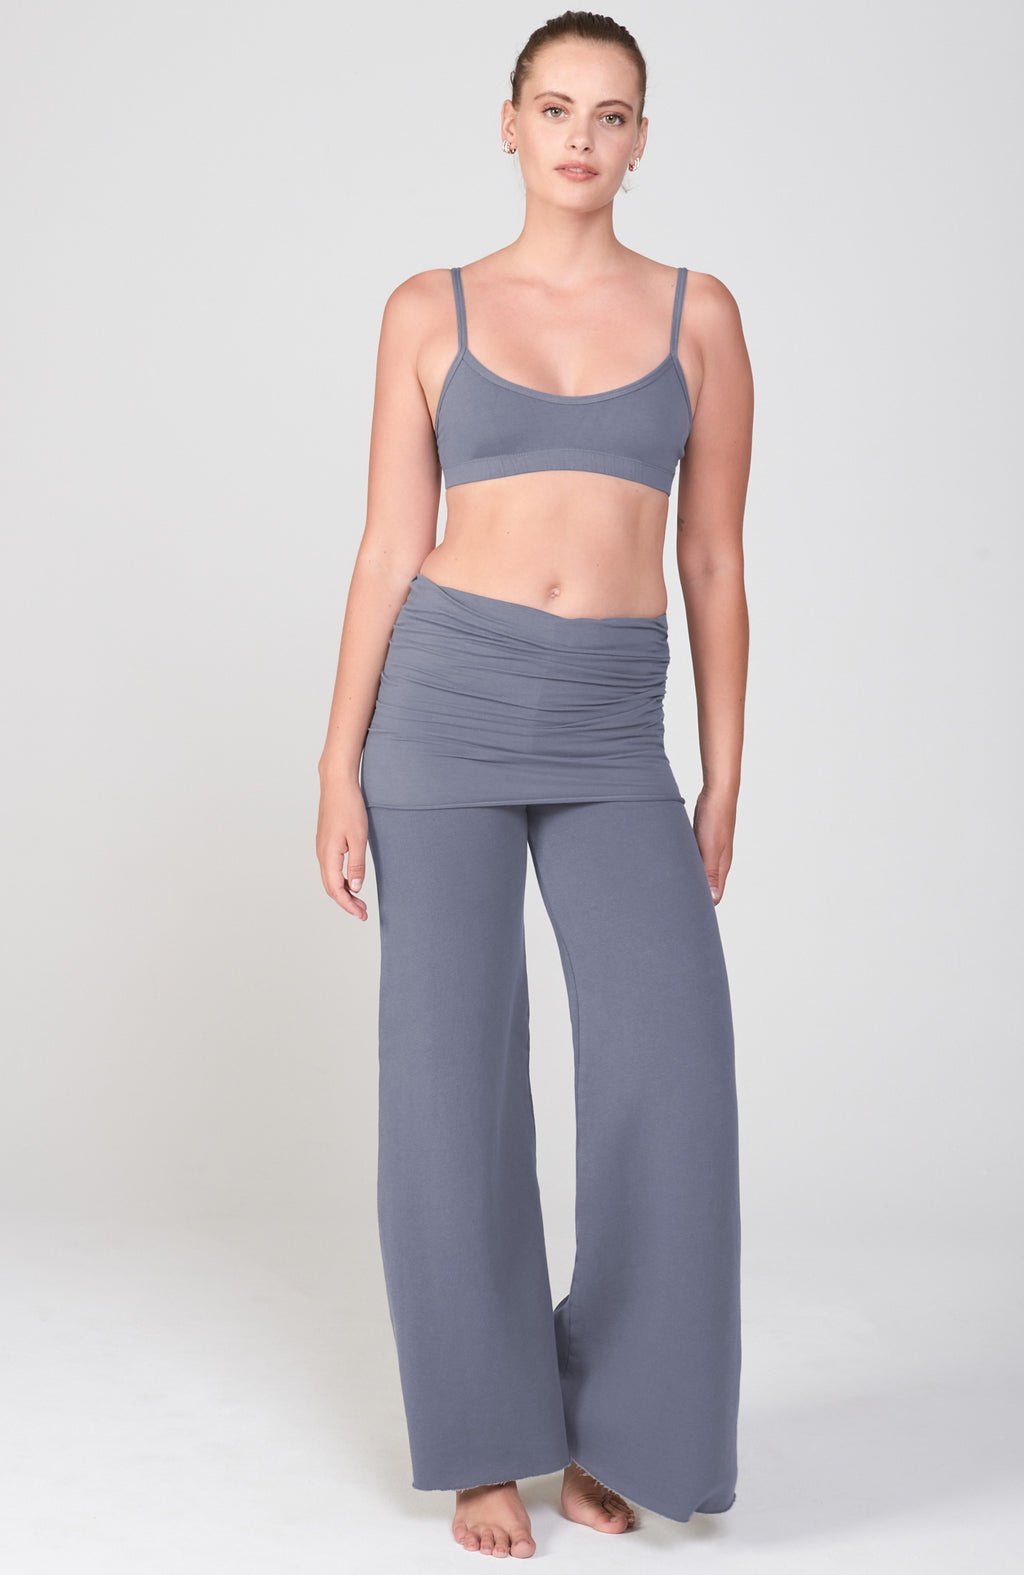 The Nomad Pant in Denim Muse